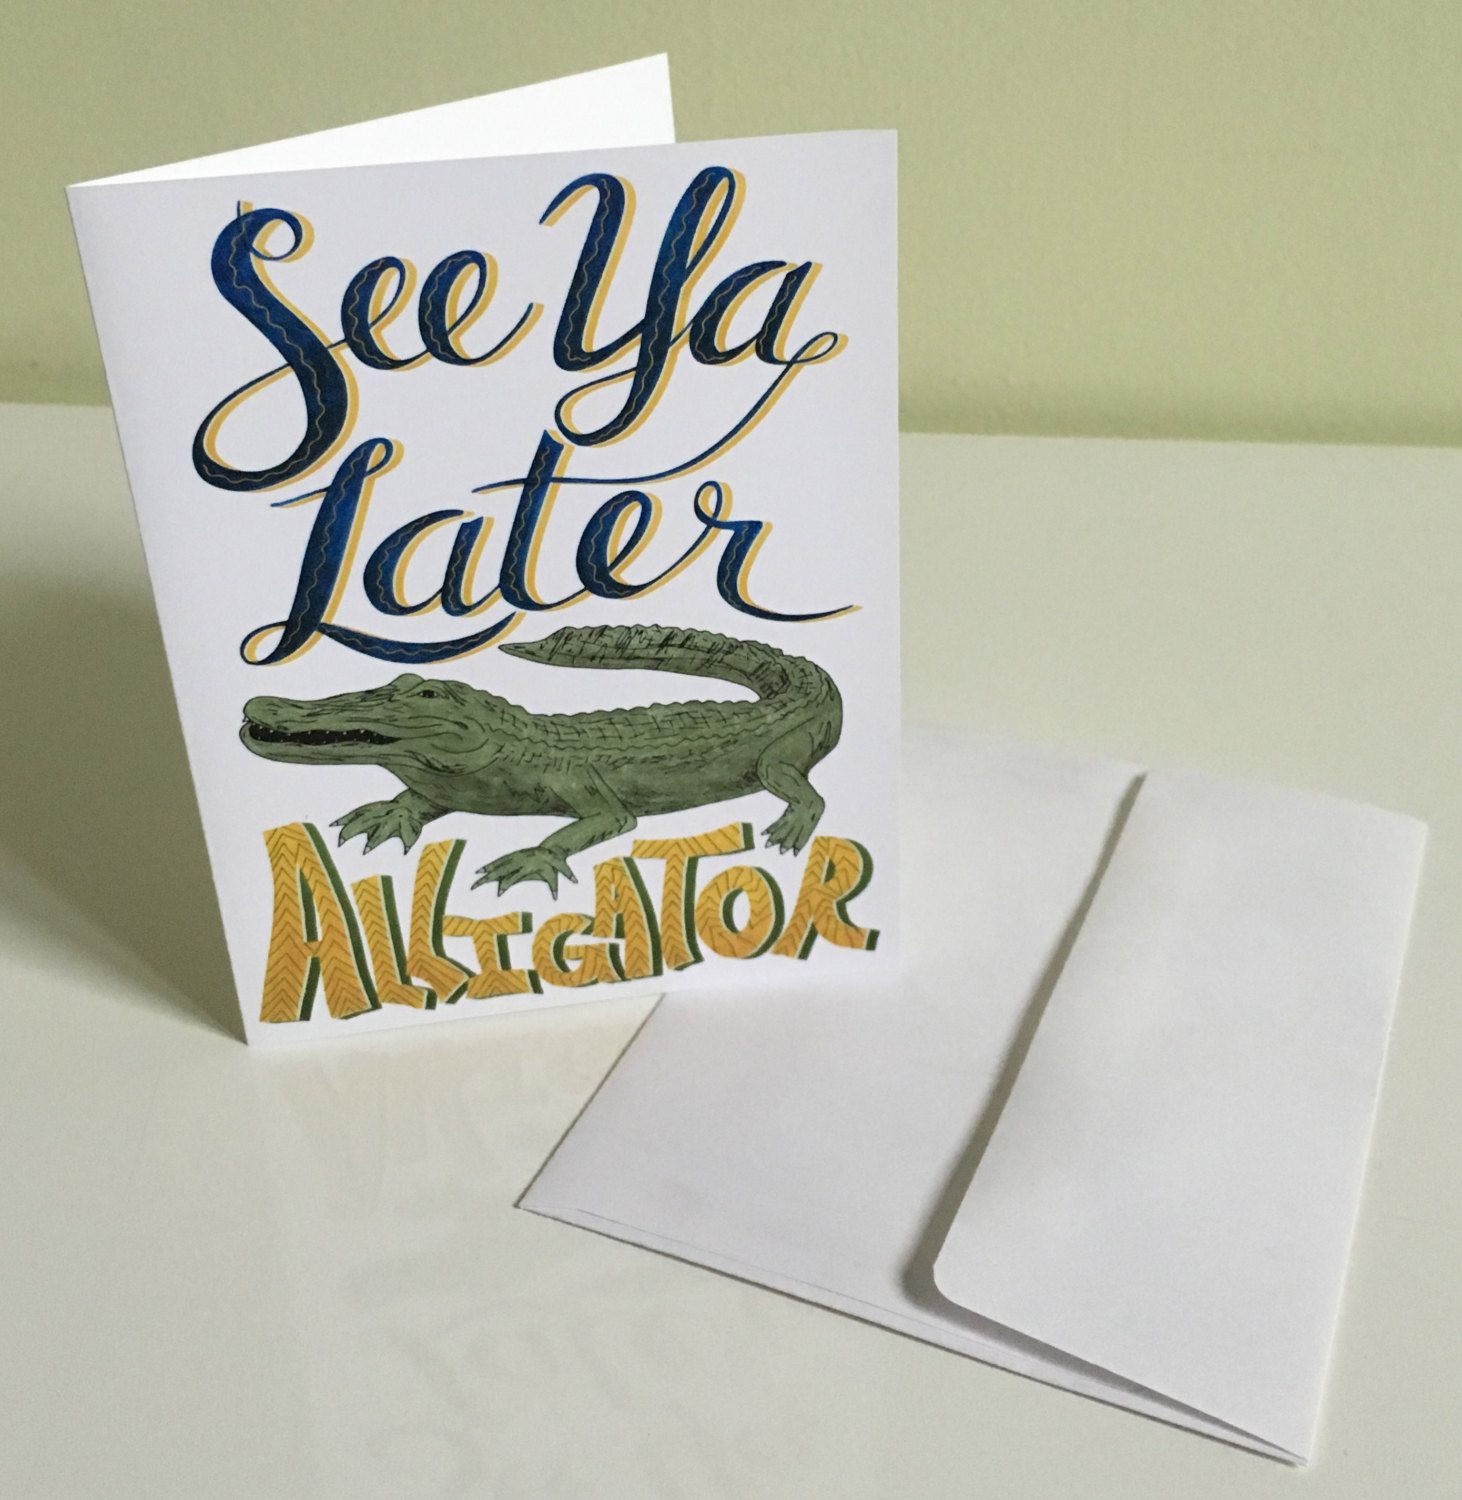 See ya later alligator greeting card goodbye leaving departure see ya later alligator greeting card goodbye leaving departure moving friend by paperheartdispatch on etsy kristyandbryce Image collections